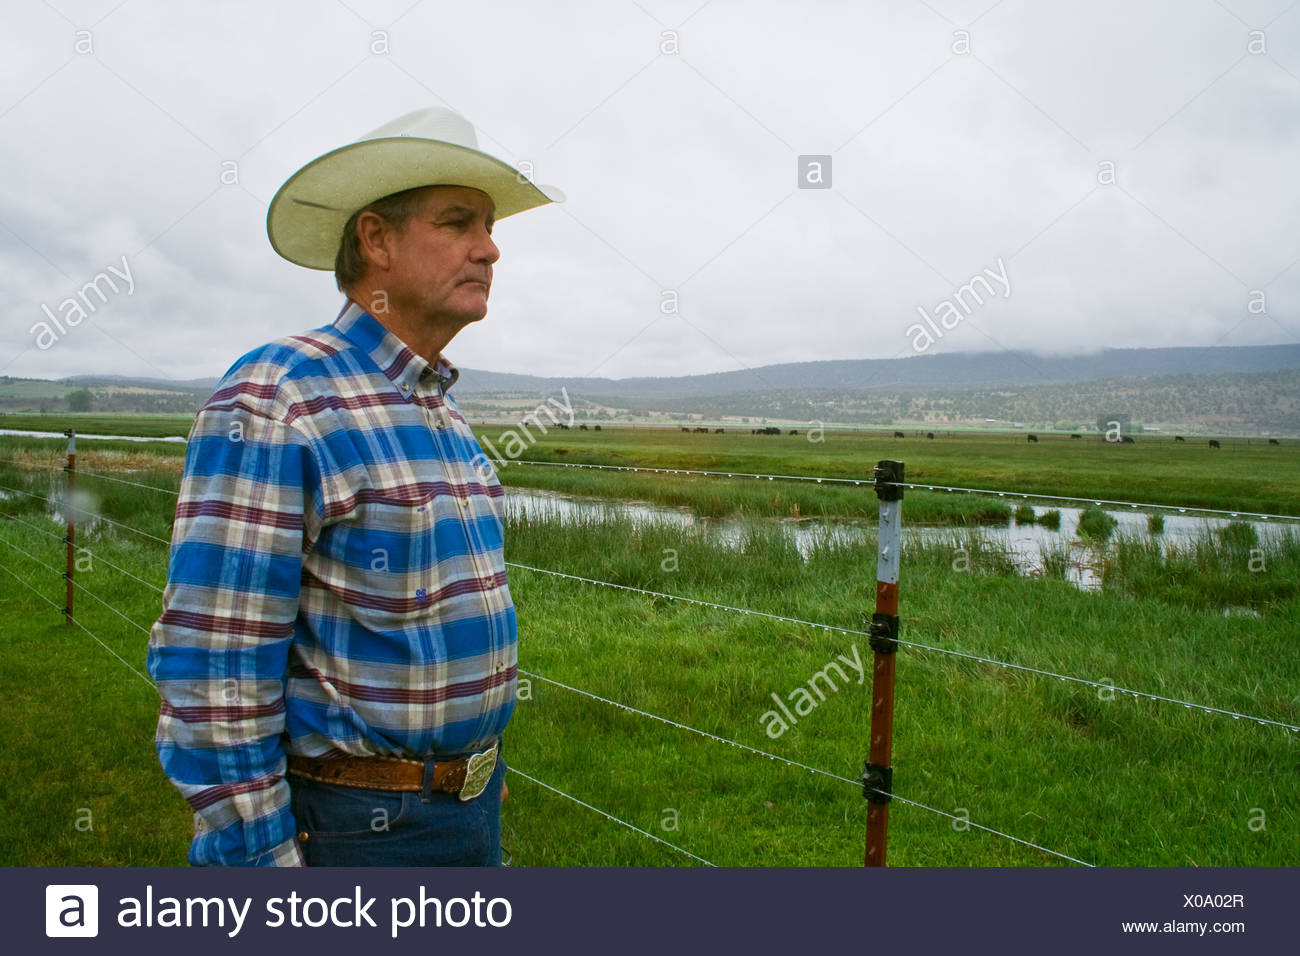 Livestock - A cattle rancher / beef producer surveys one of his pastures on a stormy day / Klamath Basin, California, USA. - Stock Image